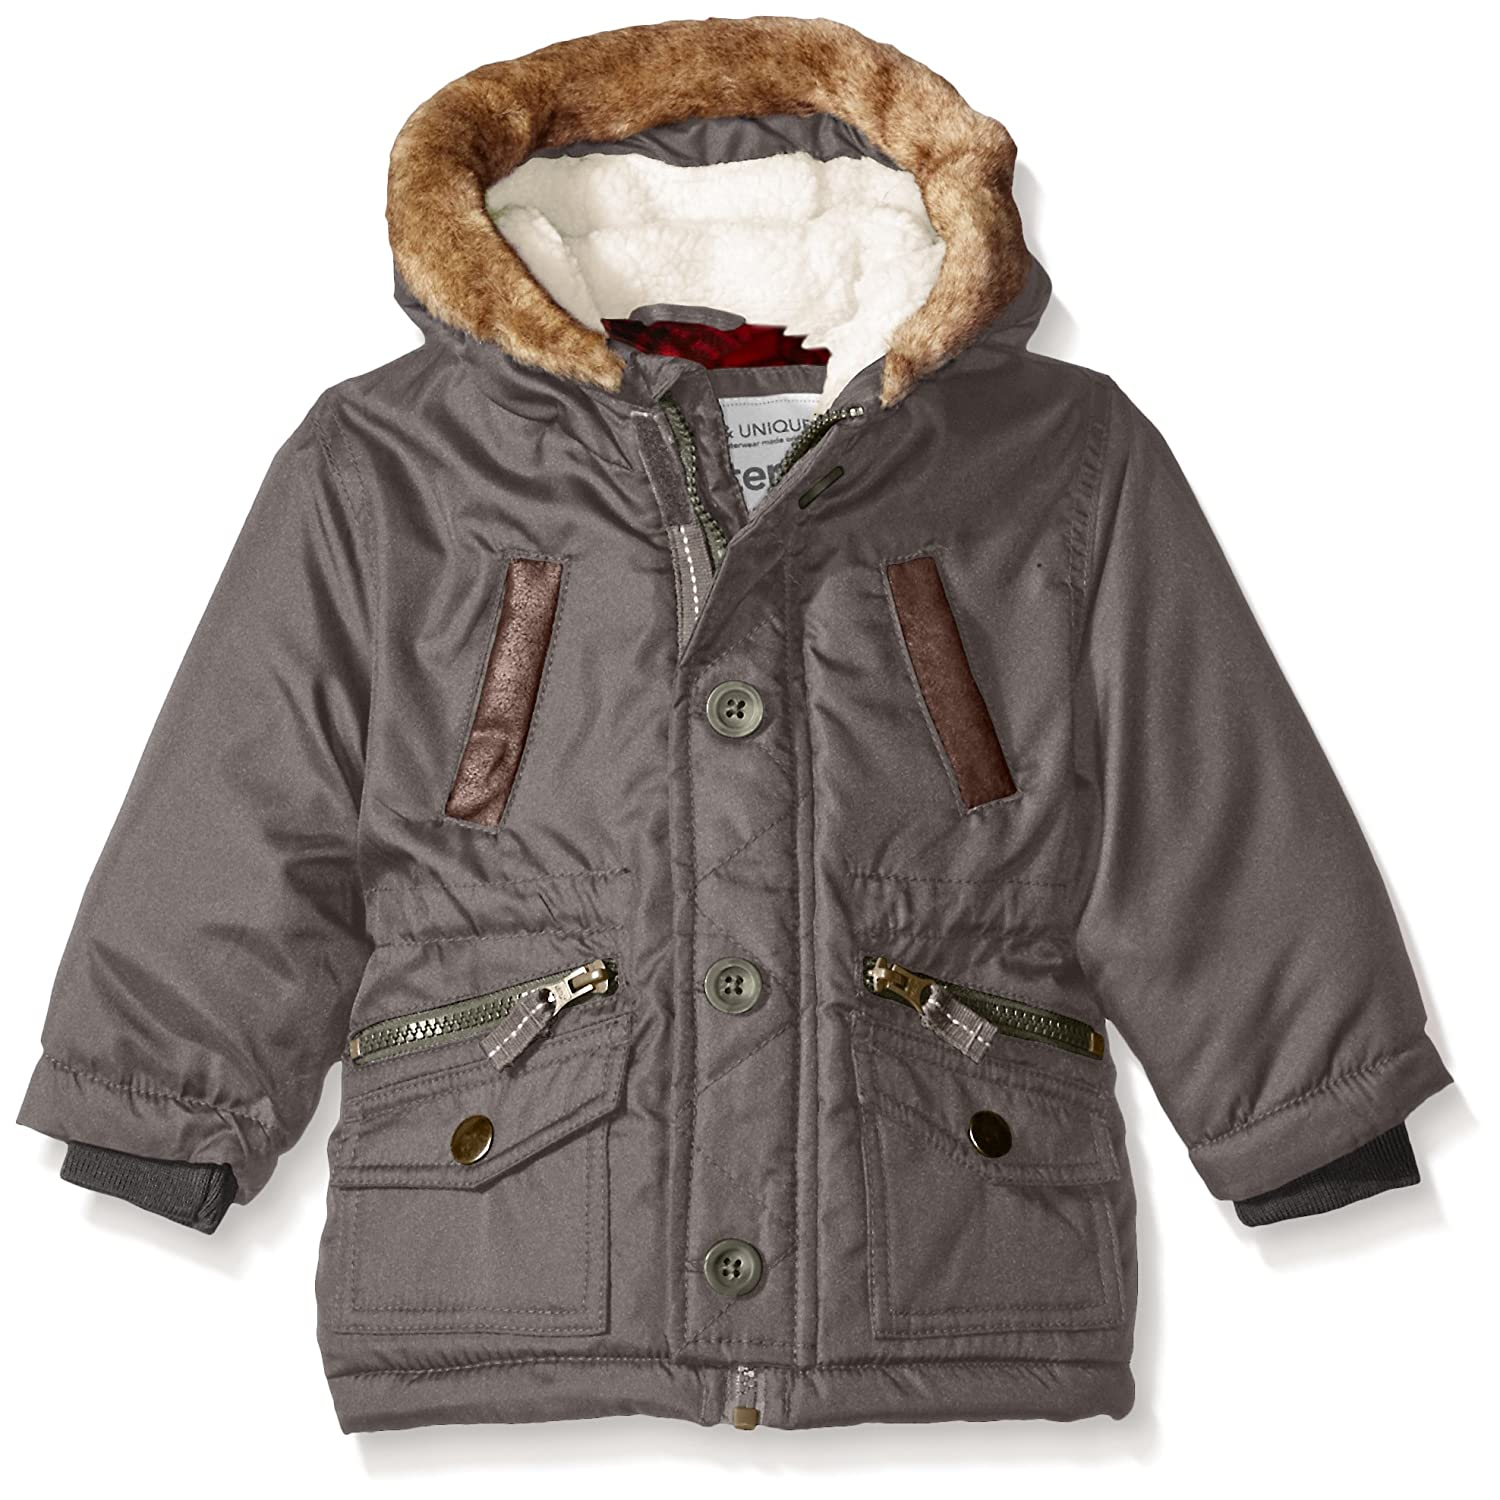 Carter's Baby Boys' Infant Heavyweight Fashion Parka Grey 12M C216632